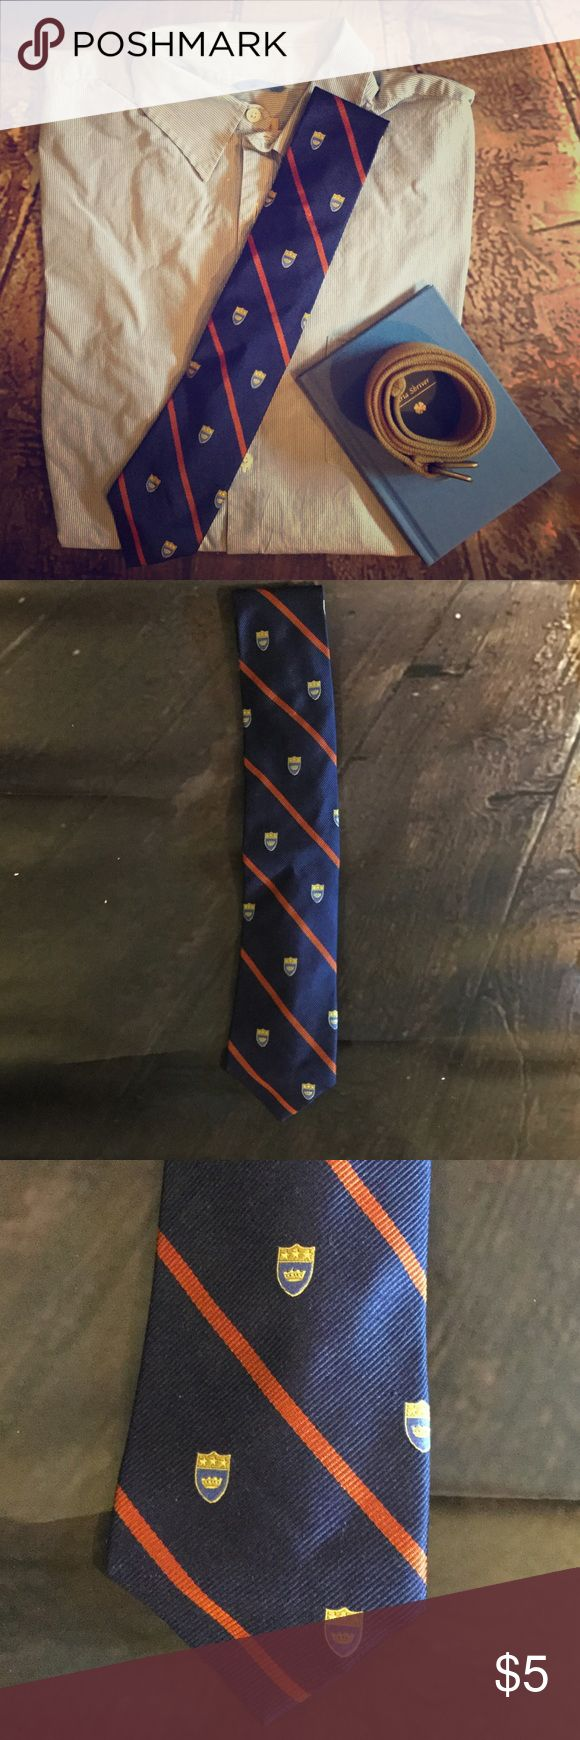 Lot of 2 Men's School Crest Tie.& Striped ONE SIZE Lot of 2 Men's Merona ties. SIZE: One Size. FABRIC: Silk. CONDITION: Worn. No Tears. No Holes. Slight wrinkles (Can easily be steamed/ironed out) 🤵 👨‍💻 $$$ Bundle! NOTE:  Lot of 2 ties are for sale, all other items are props. Merona Accessories Ties